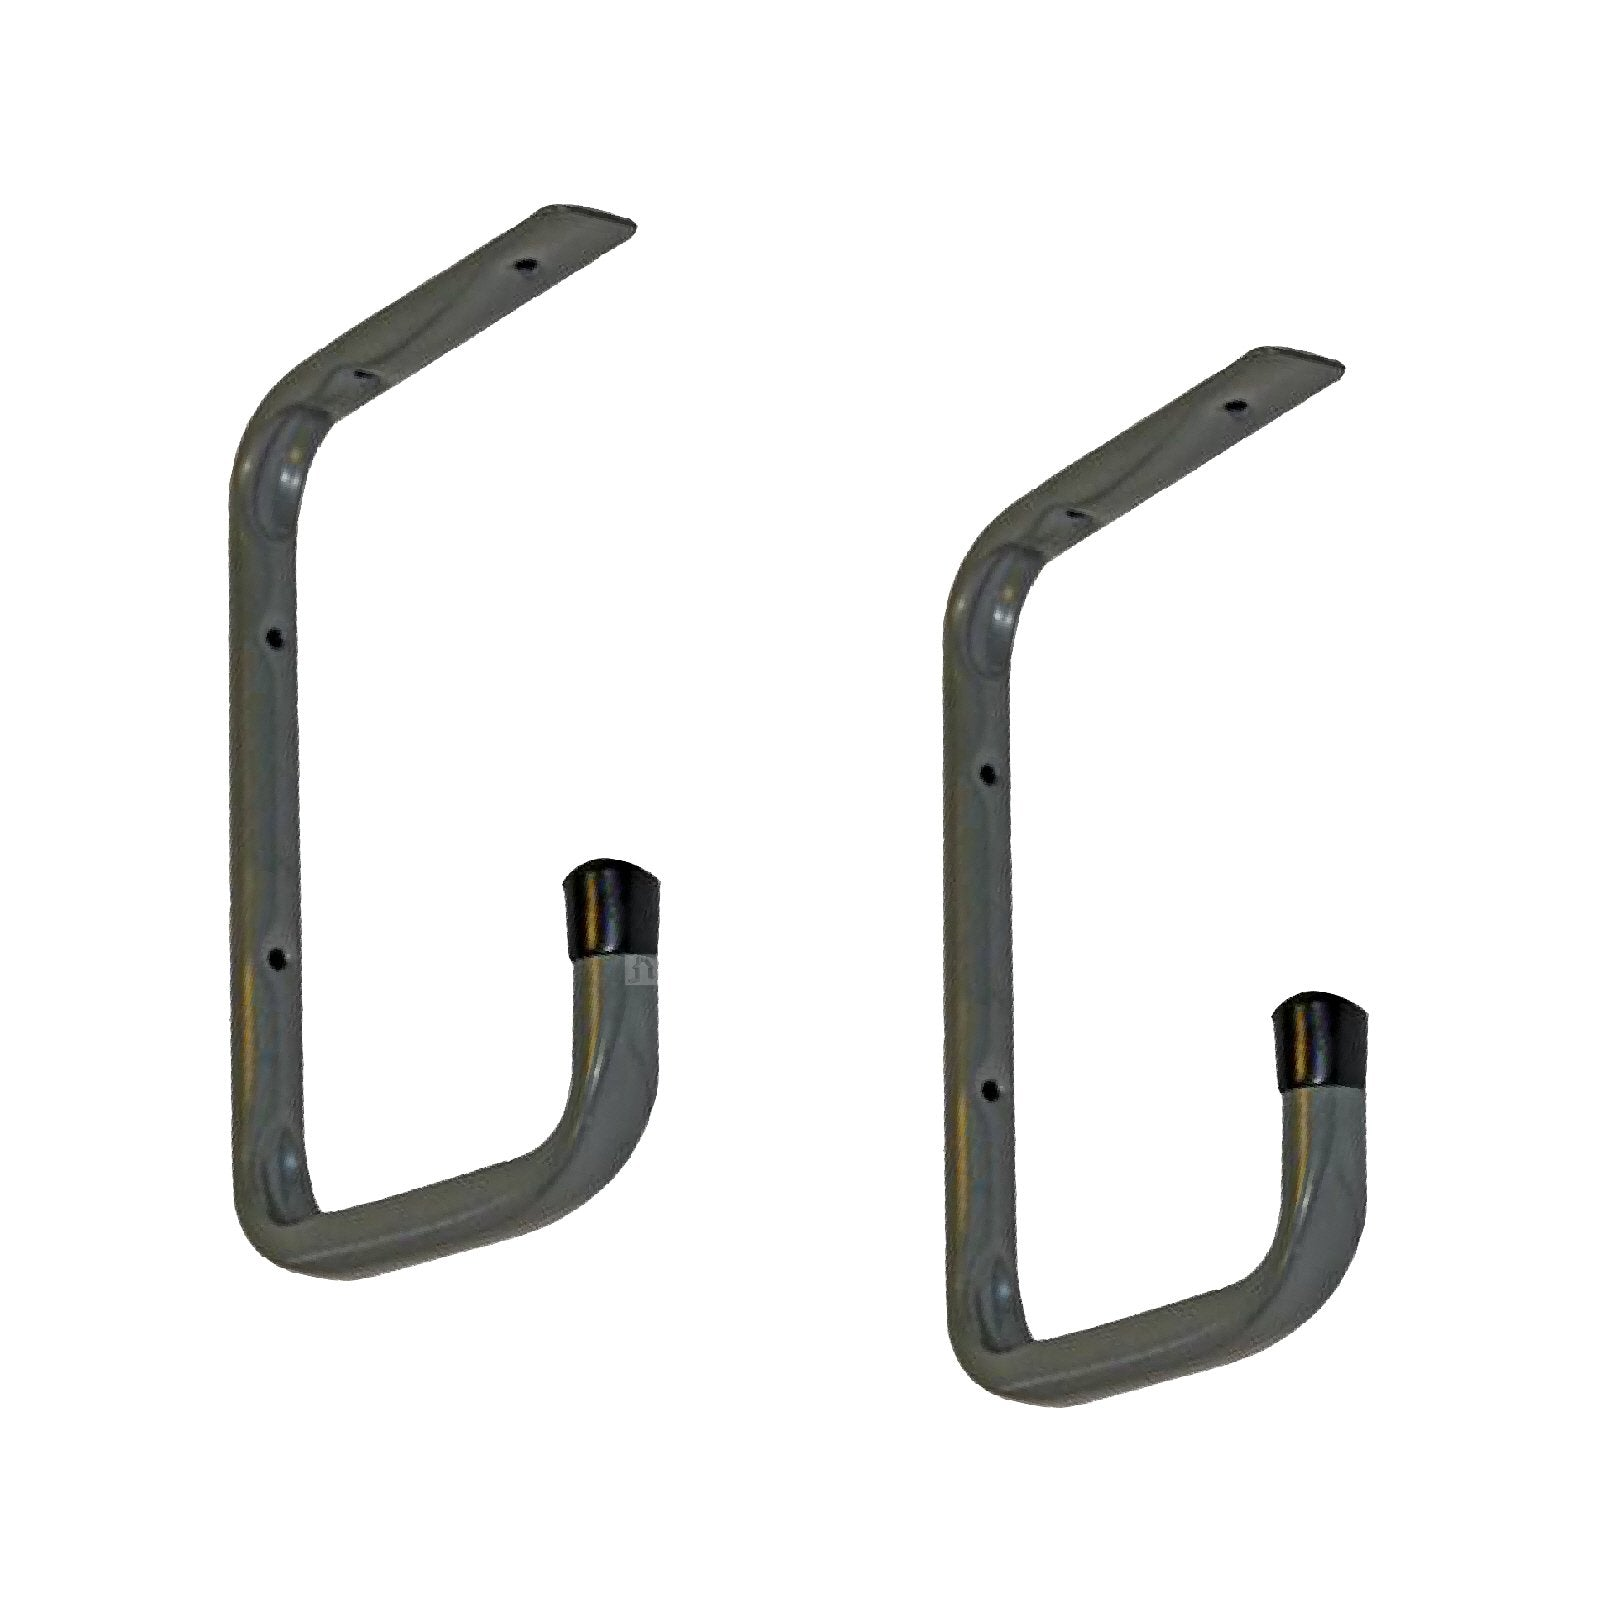 2 x Wall Mounted or Under Shelf 240mm Storage Hooks<br><br>